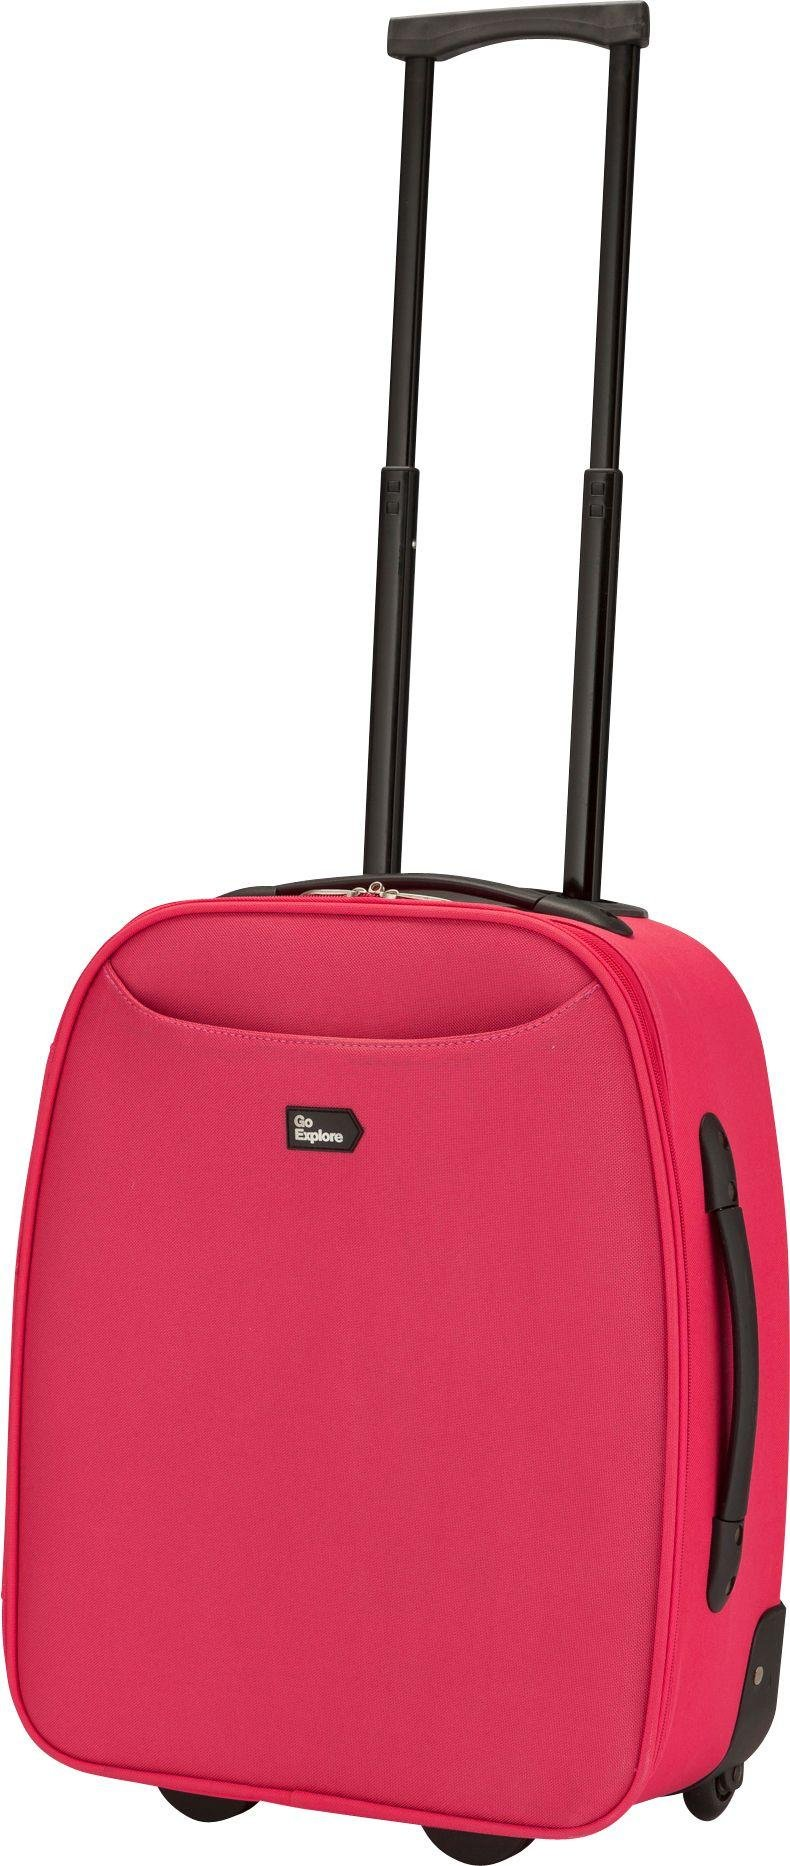 Image of Go Explore - 2 Wheel Cabin Case - Pink